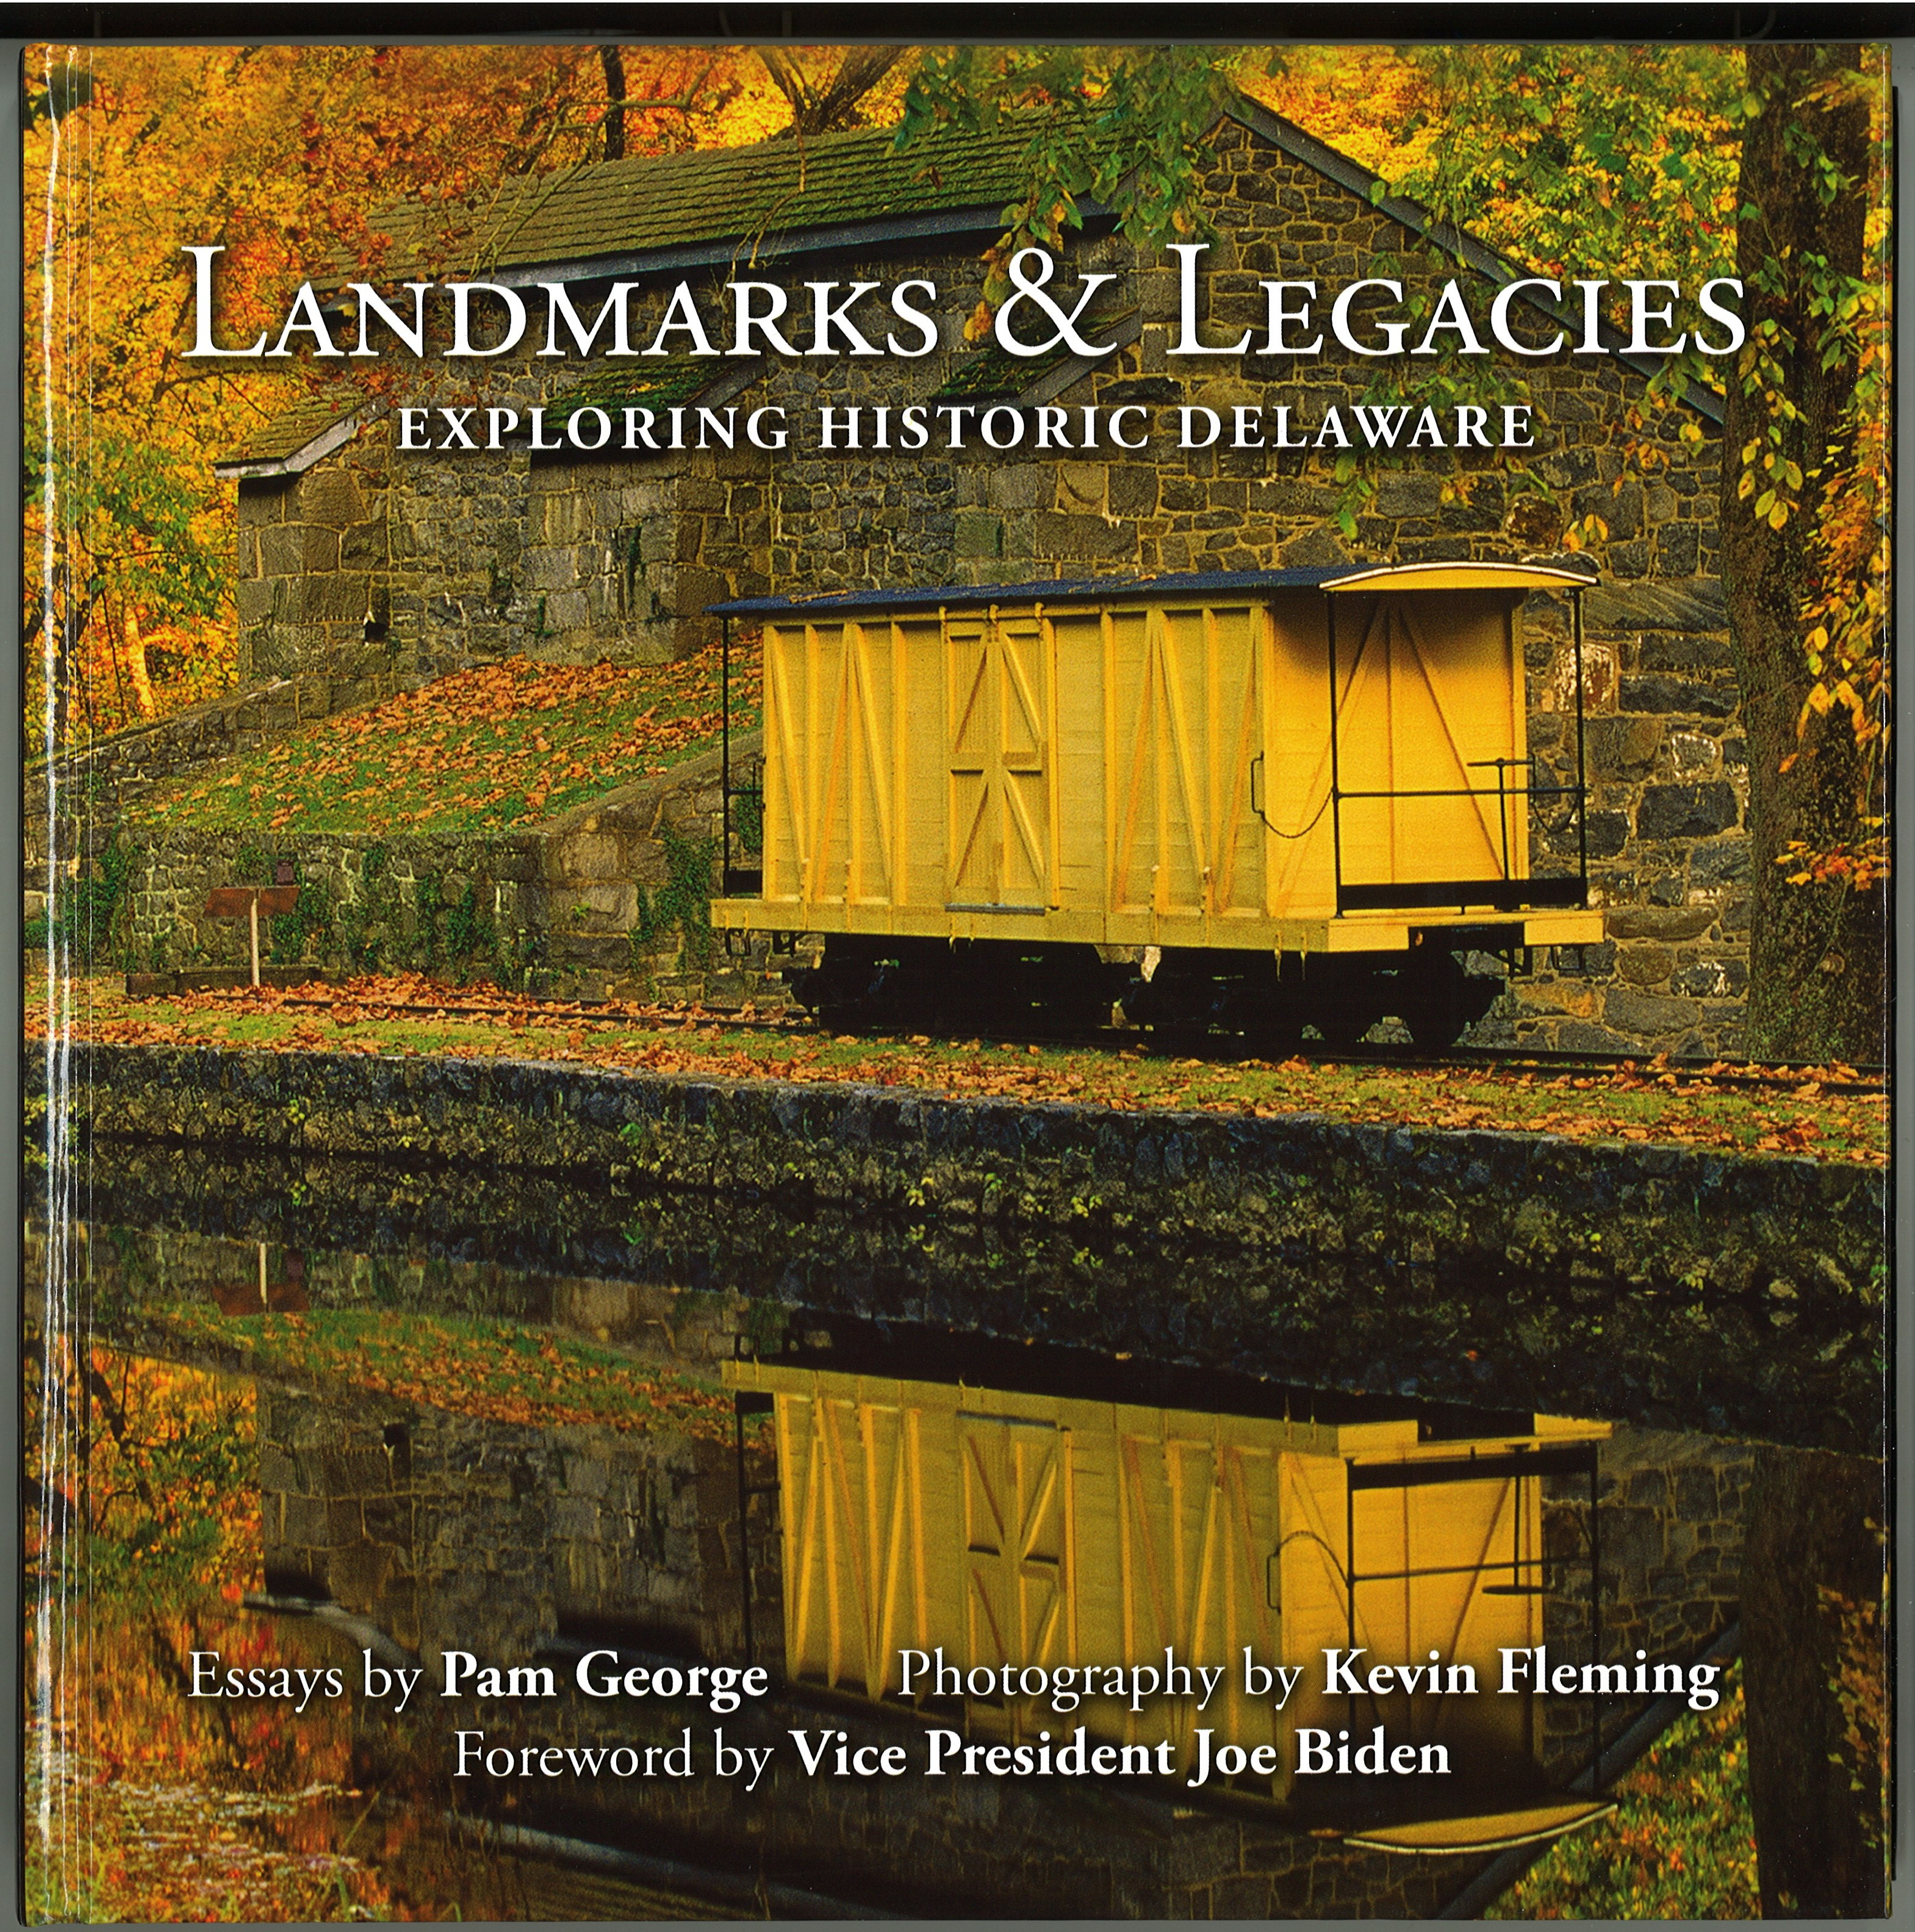 Landmarks & Legacies - Exploring Historic Delaware, Essays by Pam George. HARDCOVER, 110 pages. Prices reflect the cost of the book PLUS S&H fee of $5.00.